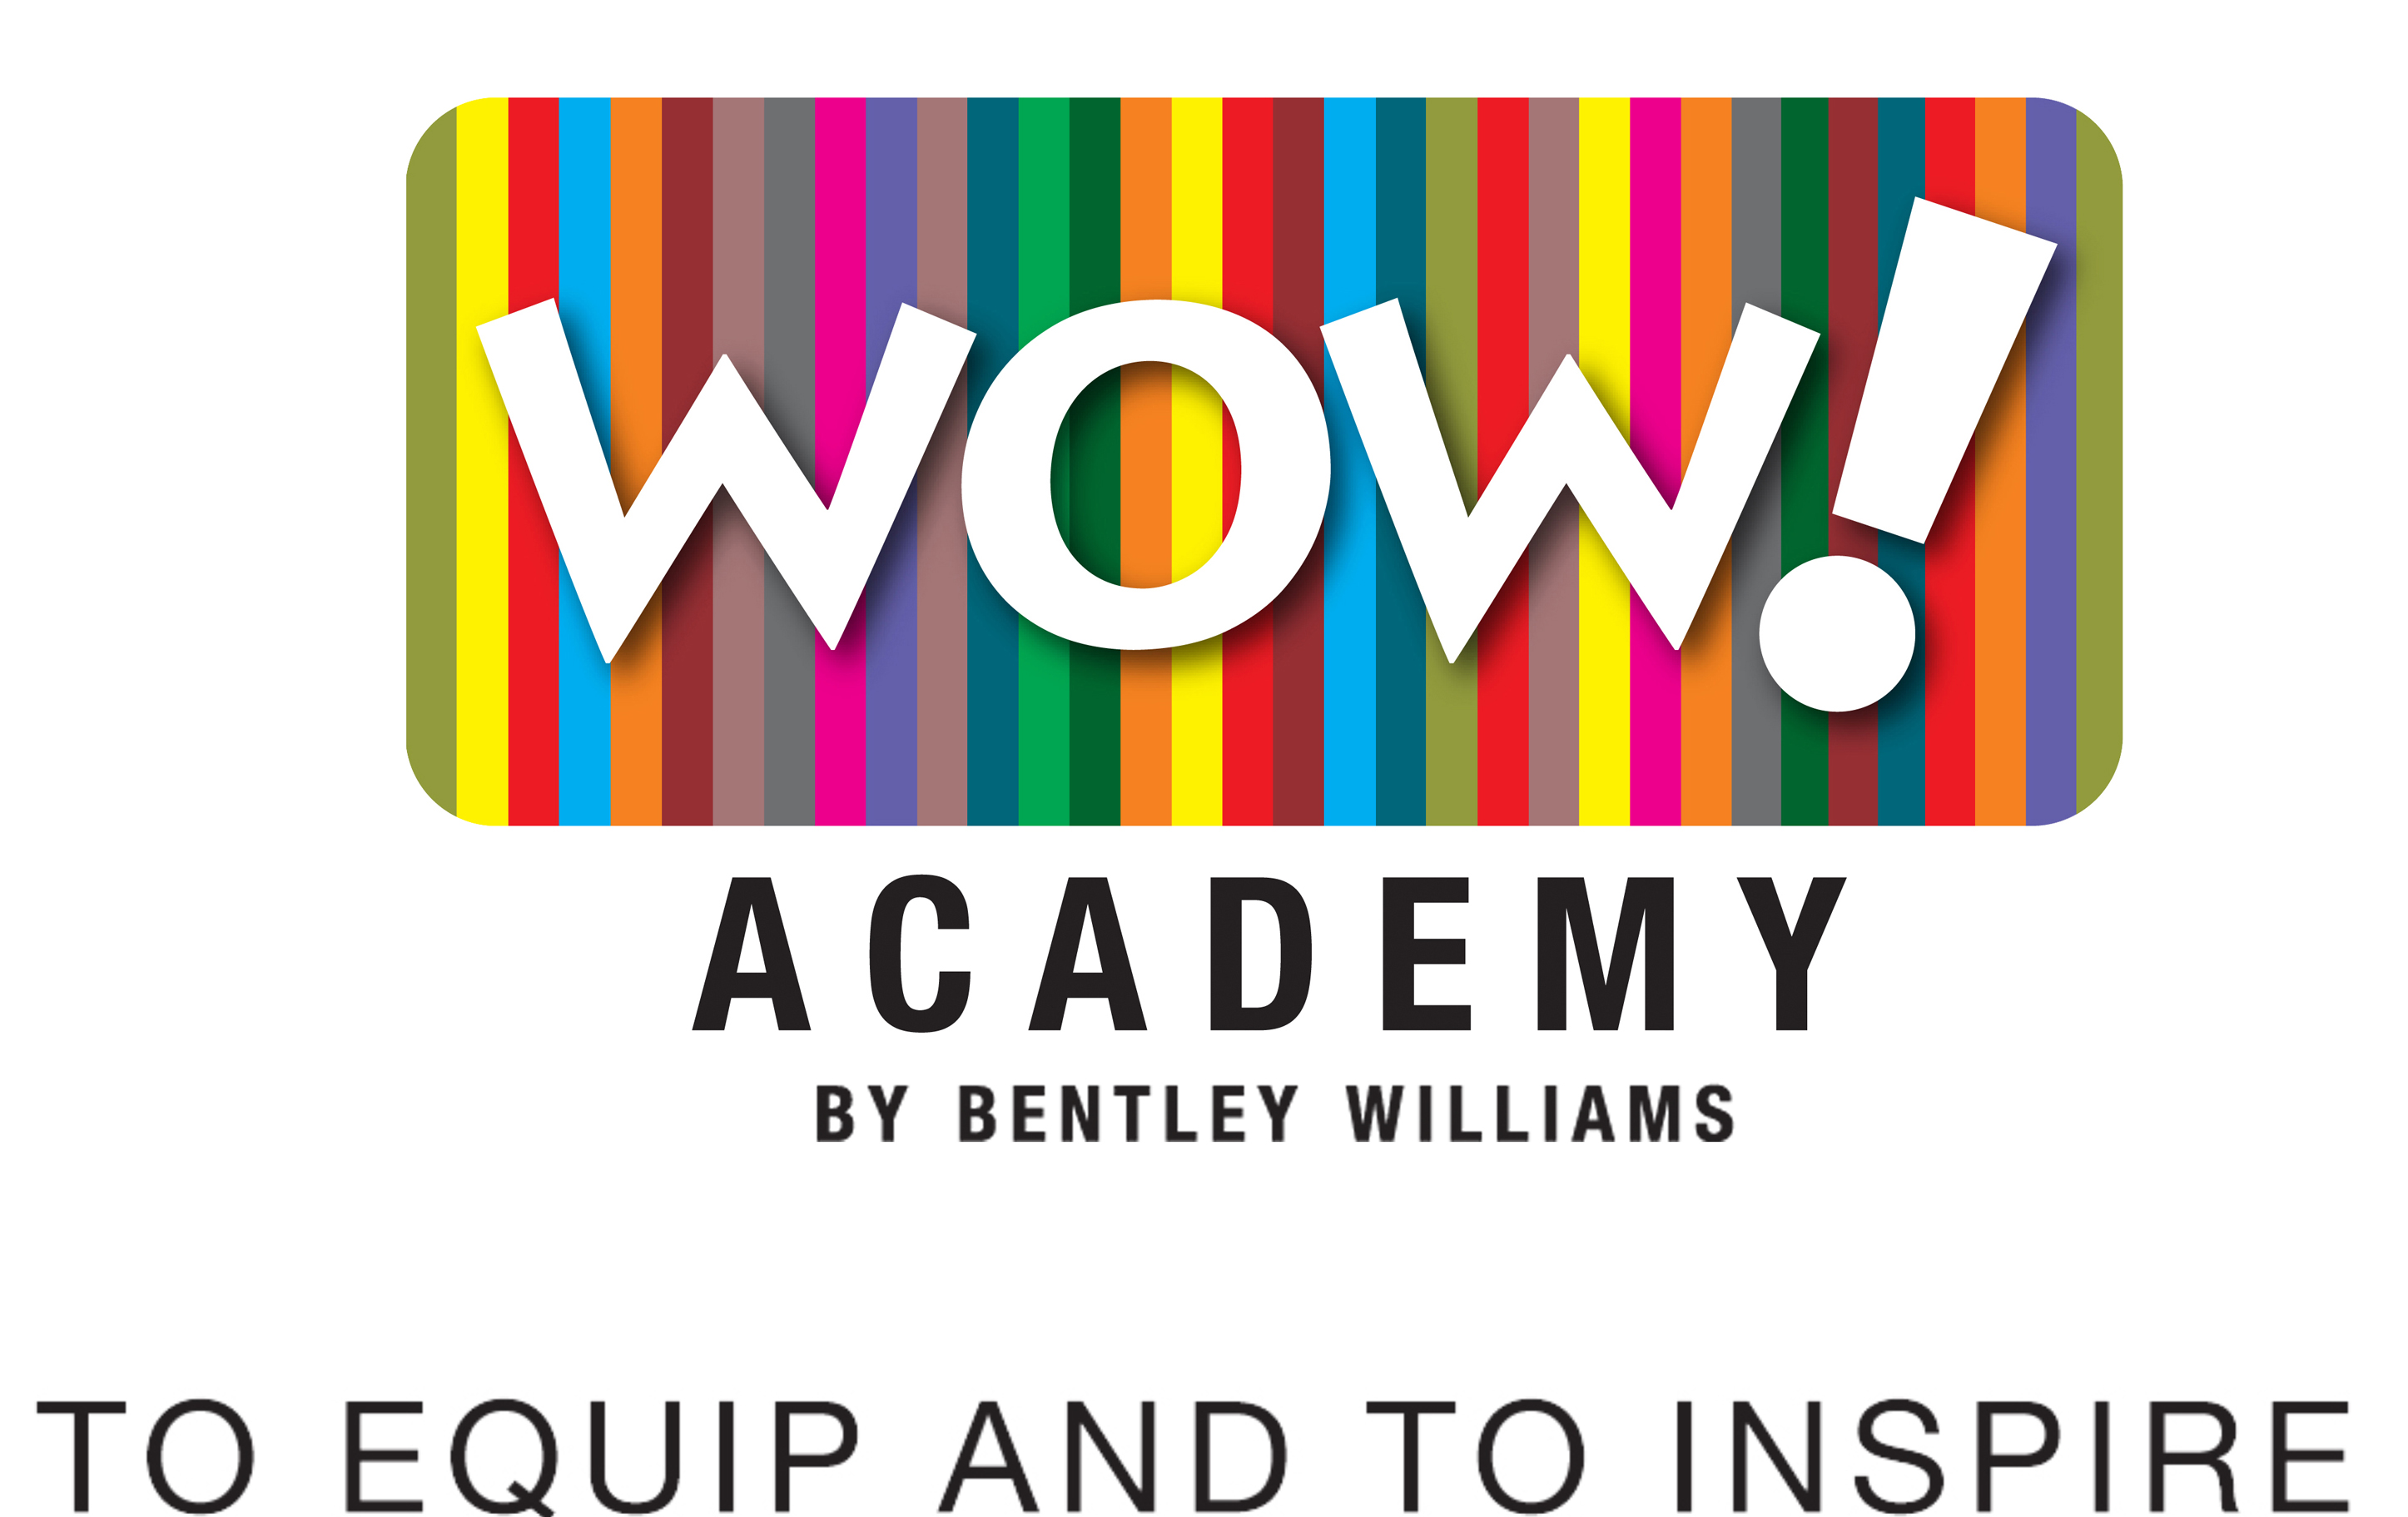 Wow! Academy by Bentley Williams